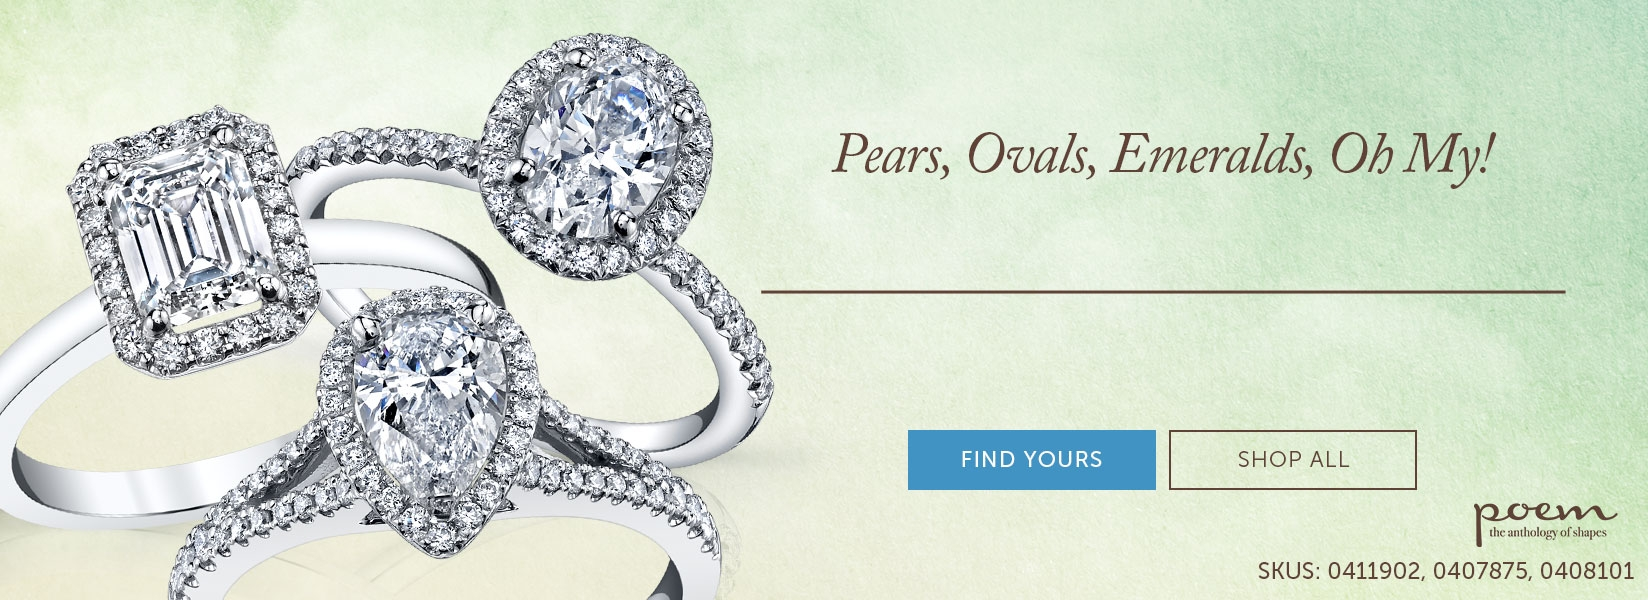 Pears, Ovals, Emeralds Ring